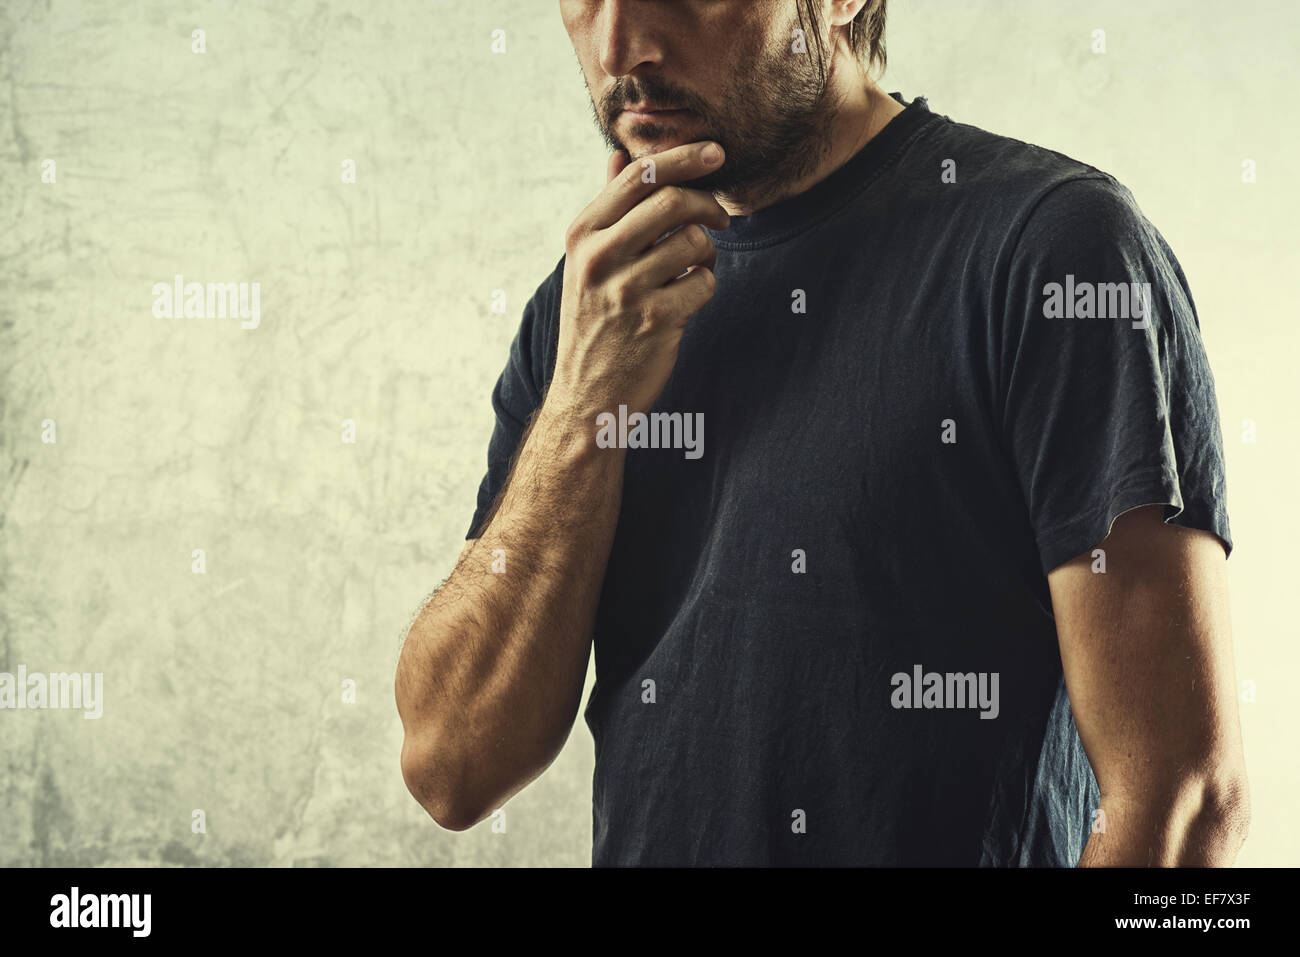 Forgetful Man Having Problems Remembering Something Important, Hand on Chin. - Stock Image